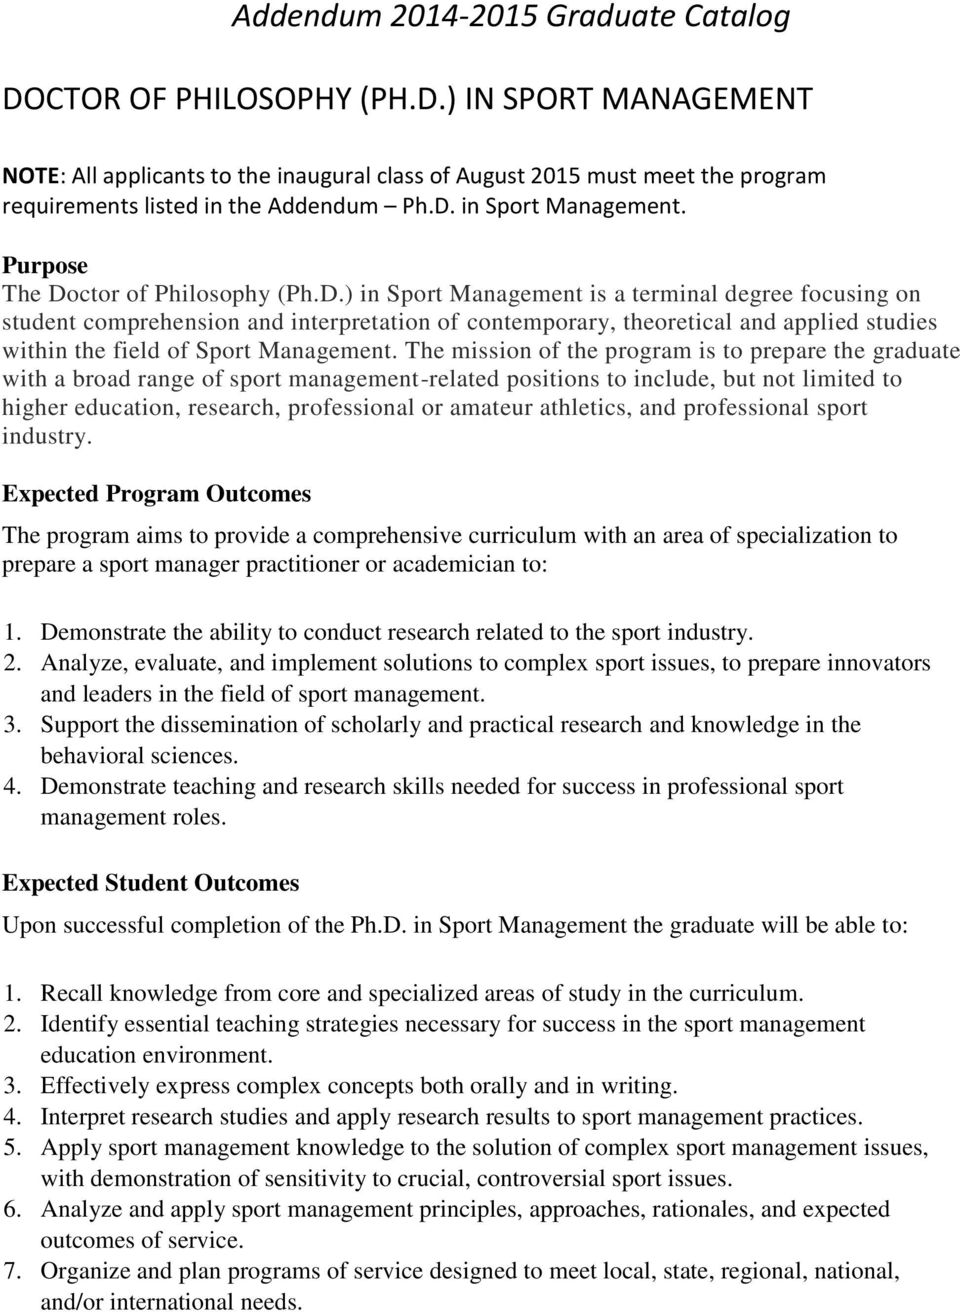 The mission of the program is to prepare the graduate with a broad range of sport management-related positions to include, but not limited to higher education, research, professional or amateur